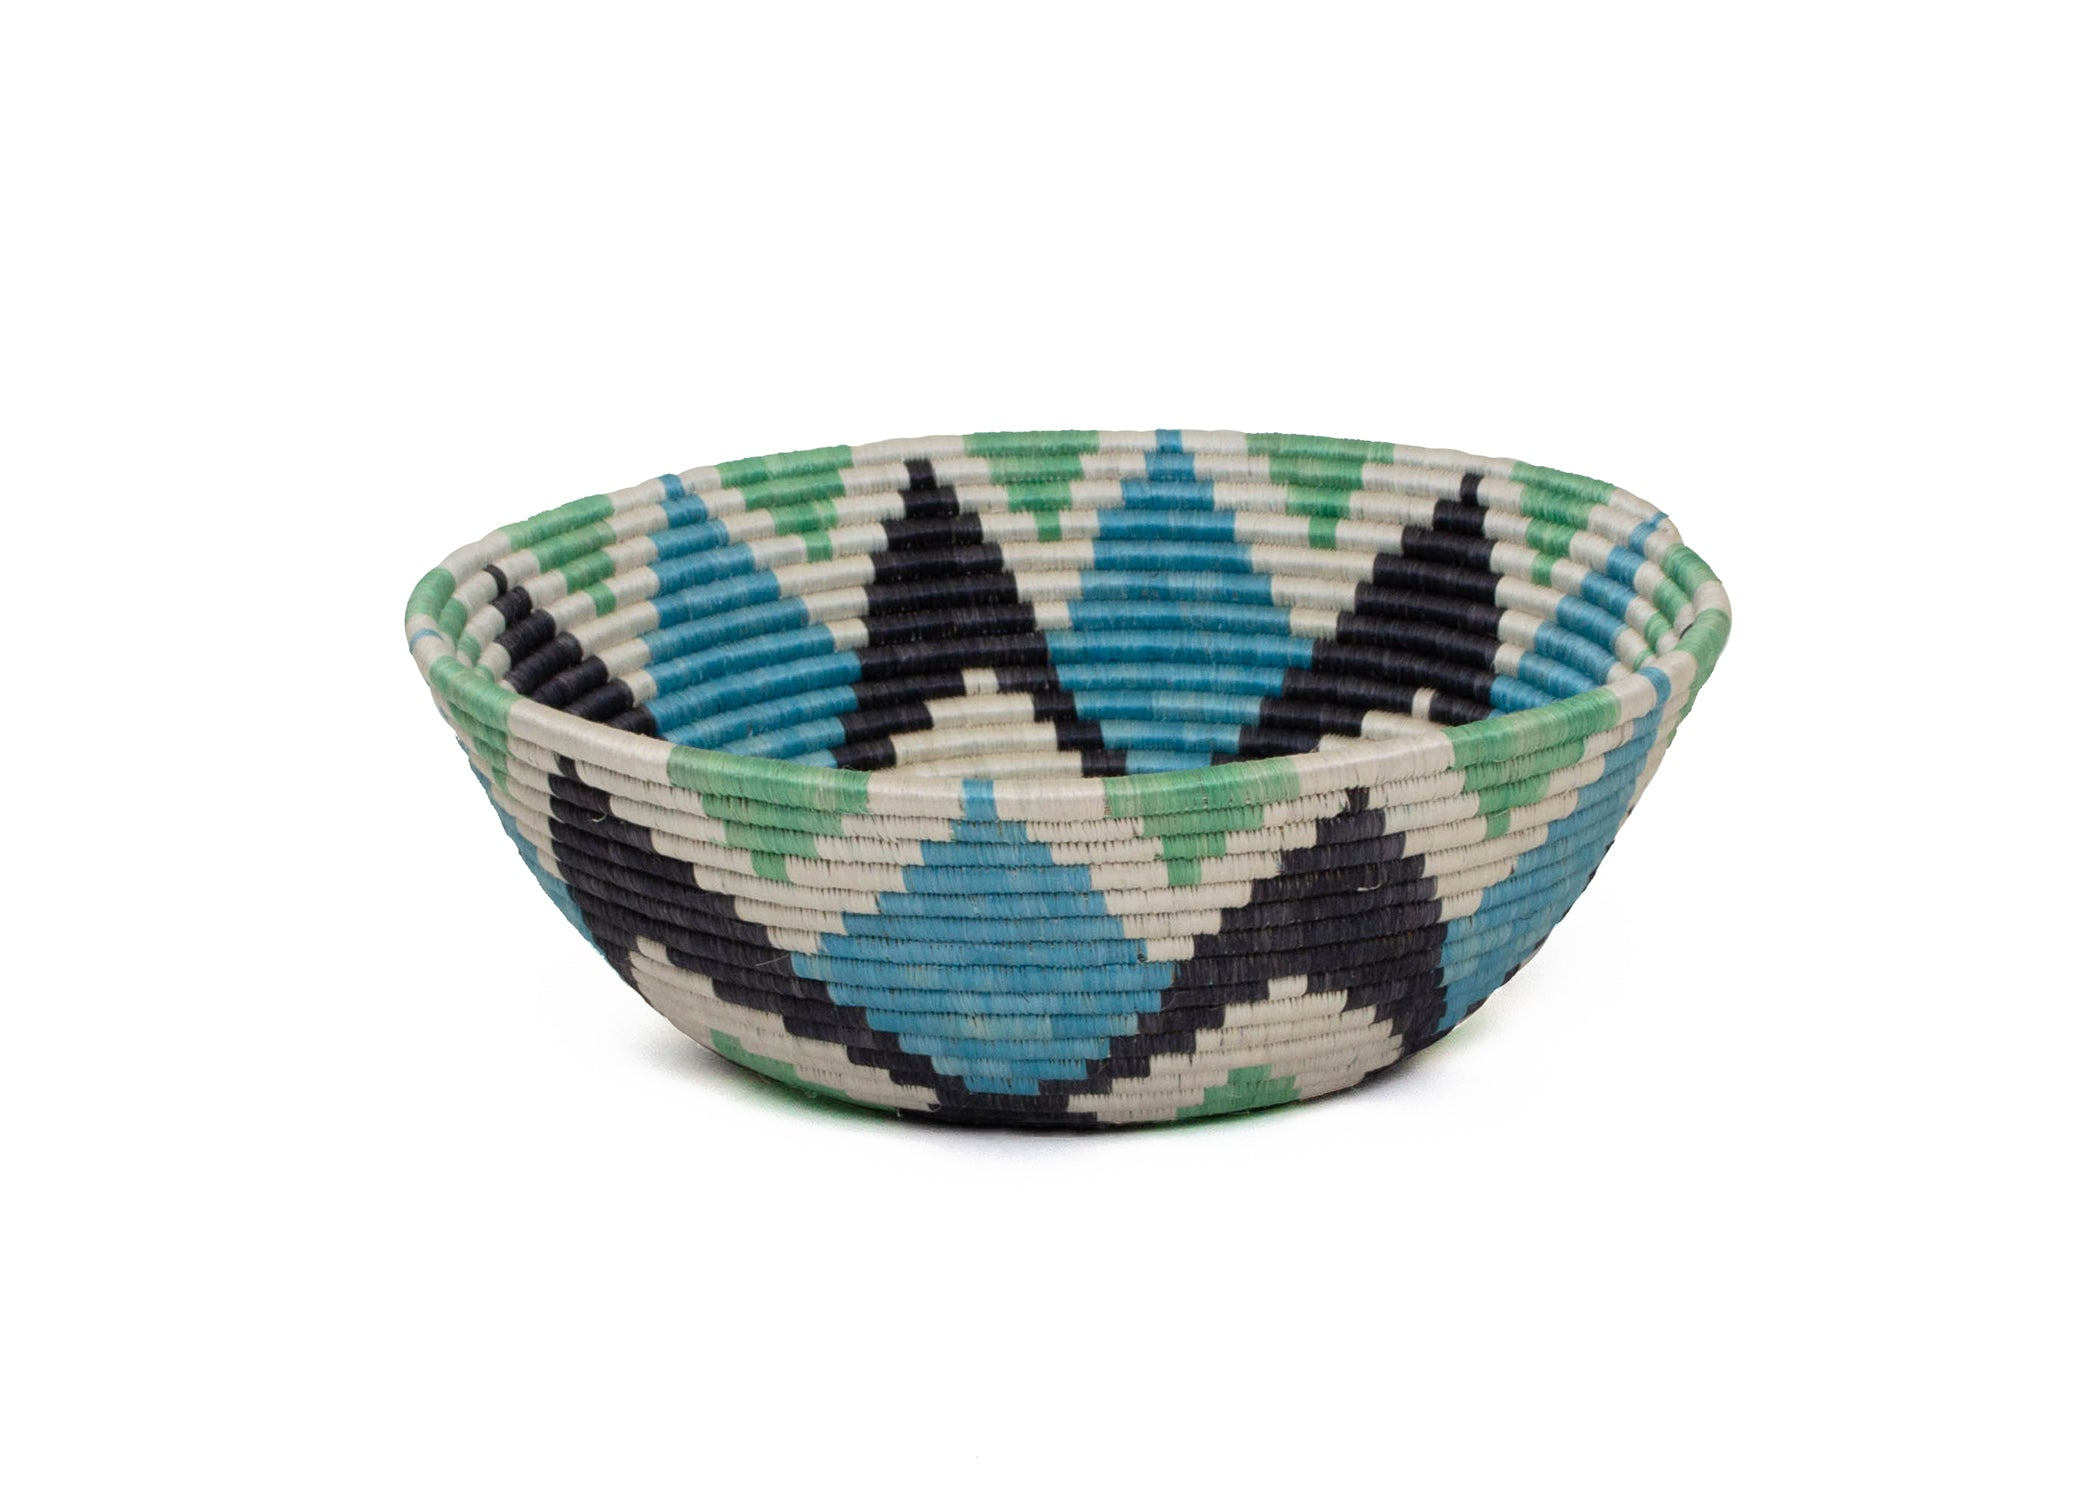 Jumbo Denim Blue Ikaze Bowl - KAZI - Artisan made high quality home decor and wall art